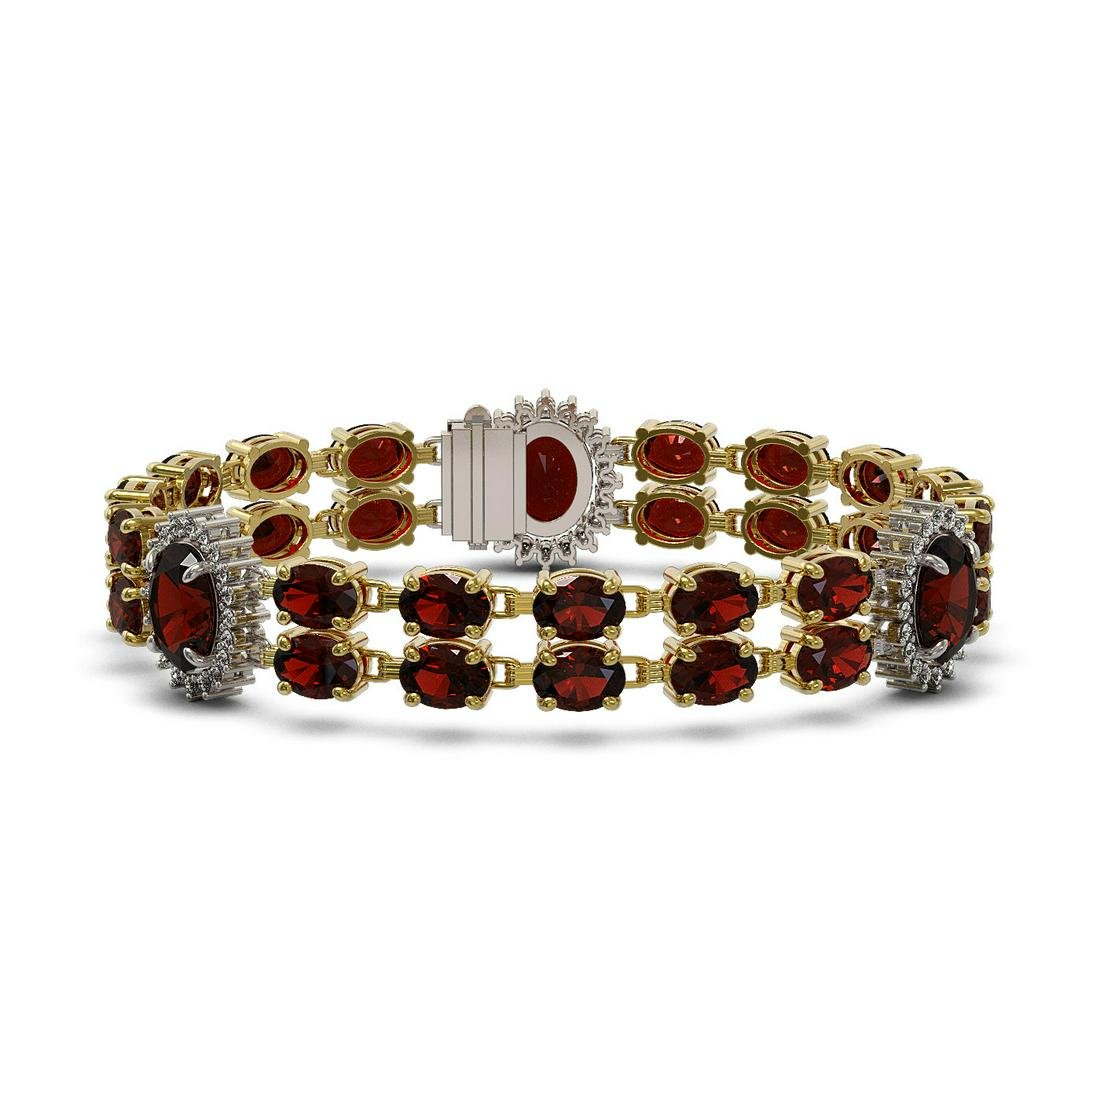 16.47 ctw Garnet & Diamond Bracelet 14K Yellow Gold